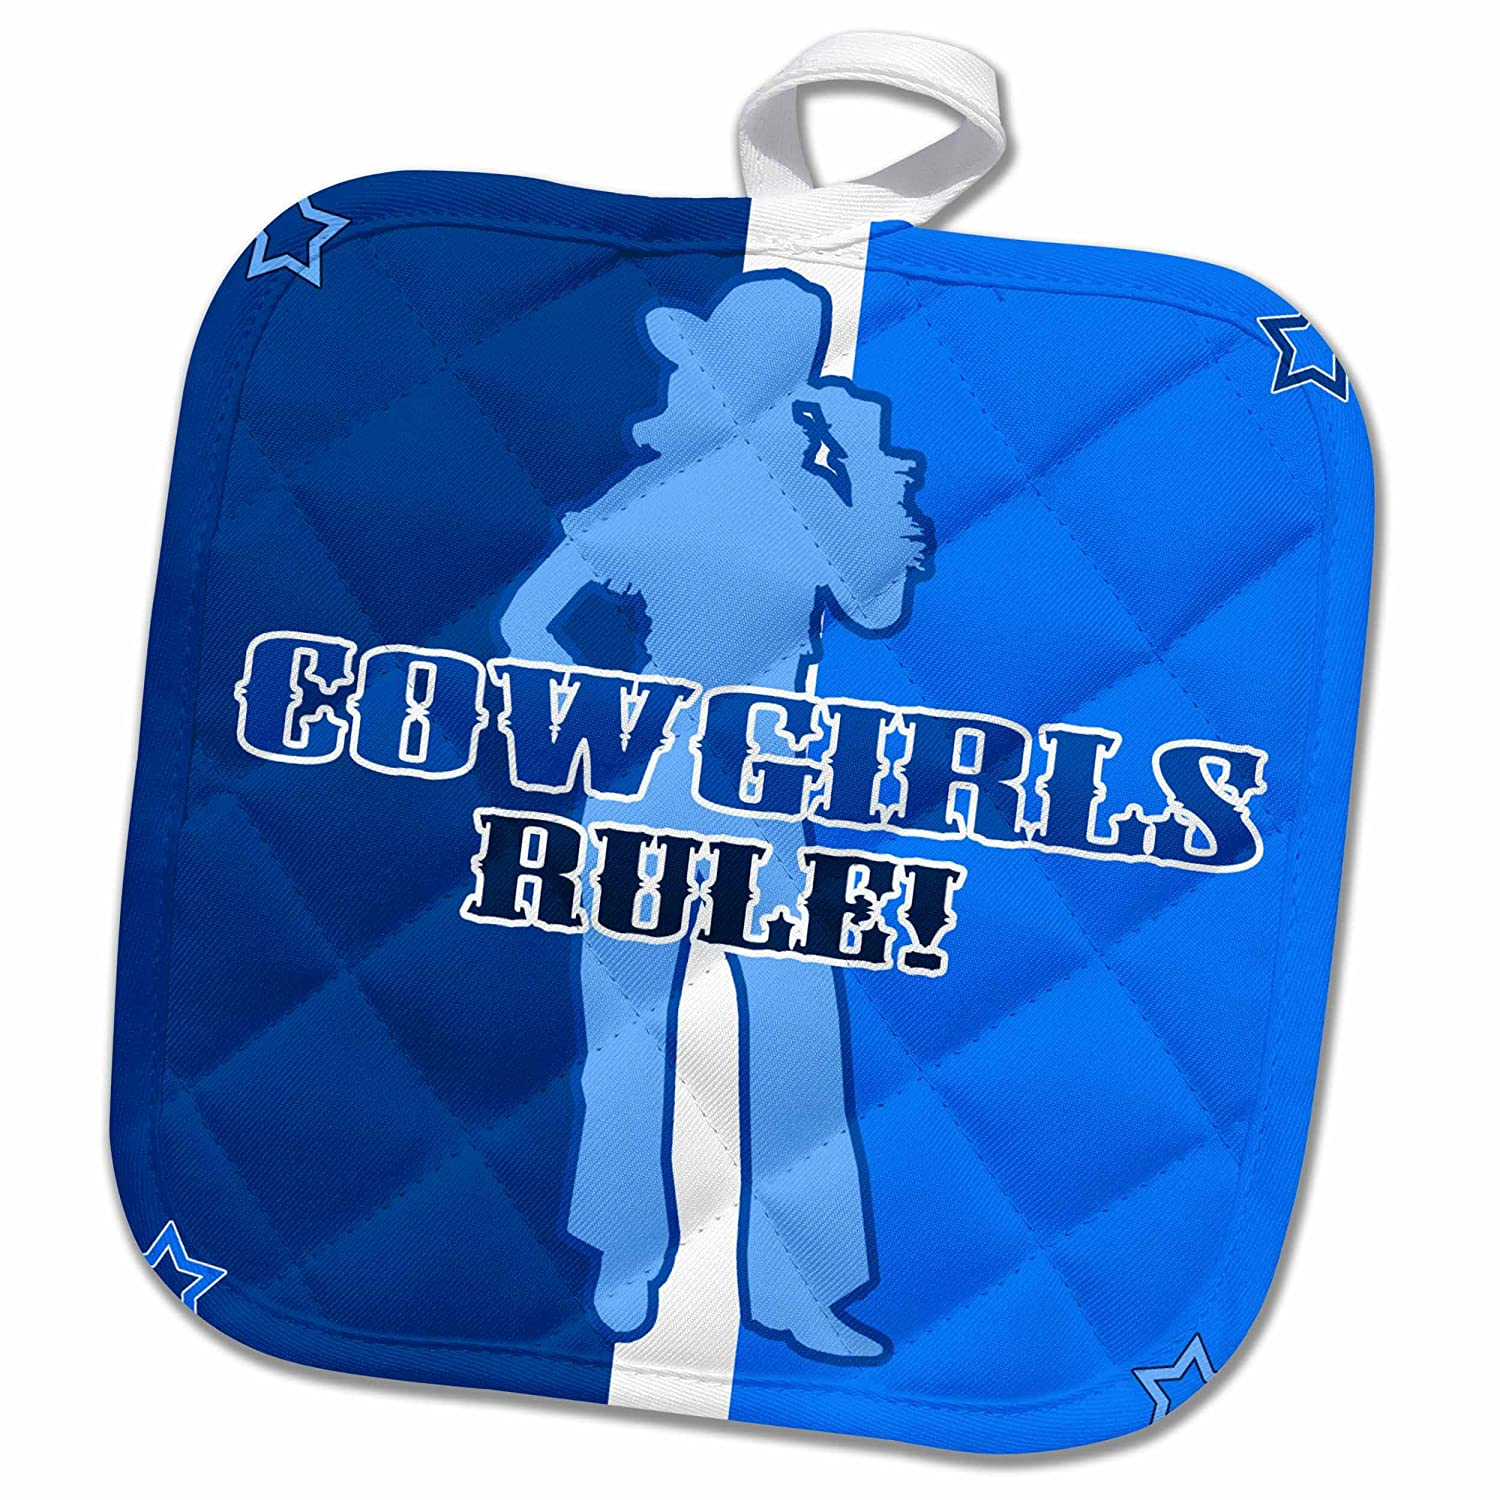 Buy 3drose Cowgirls Rule On Blue Stripes With Stars Potholder 8 X 8 Online At Low Prices In India Amazon In